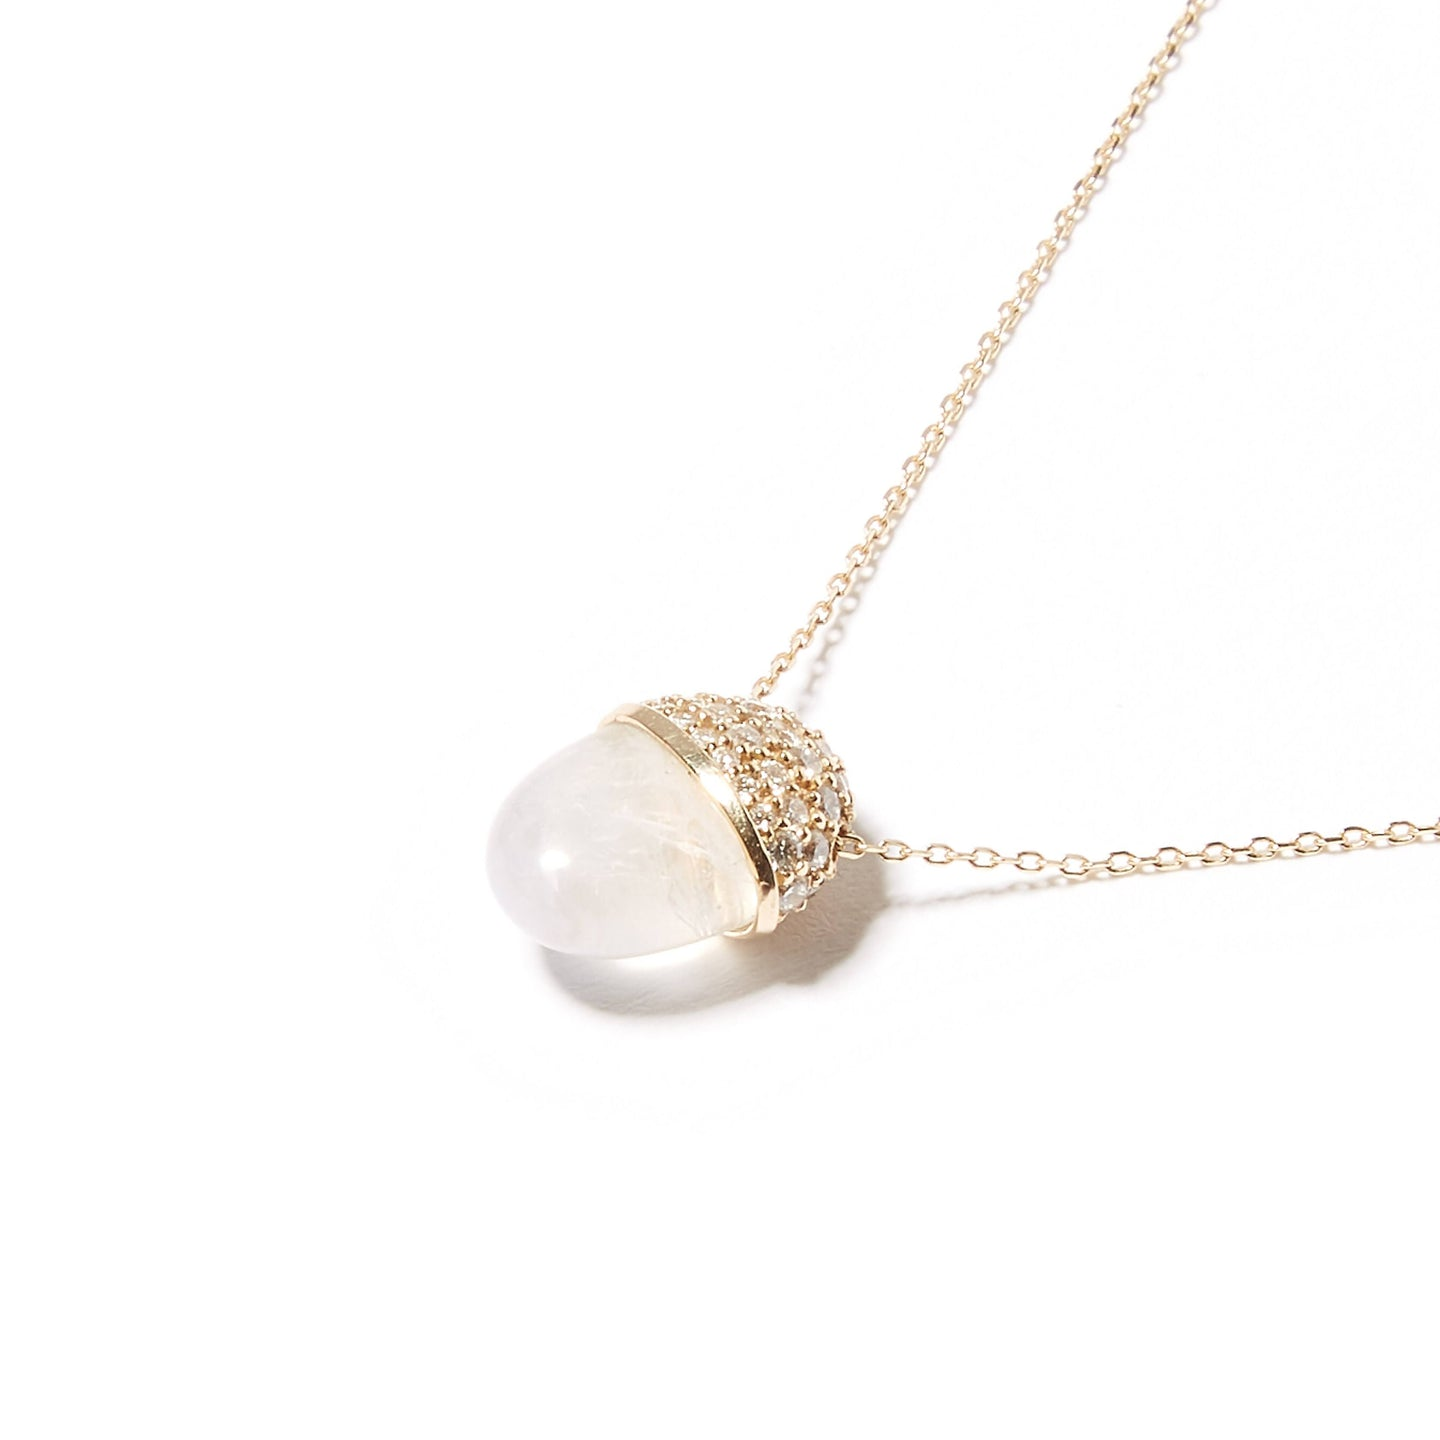 Found Cap Pendant Necklace - Moonstone